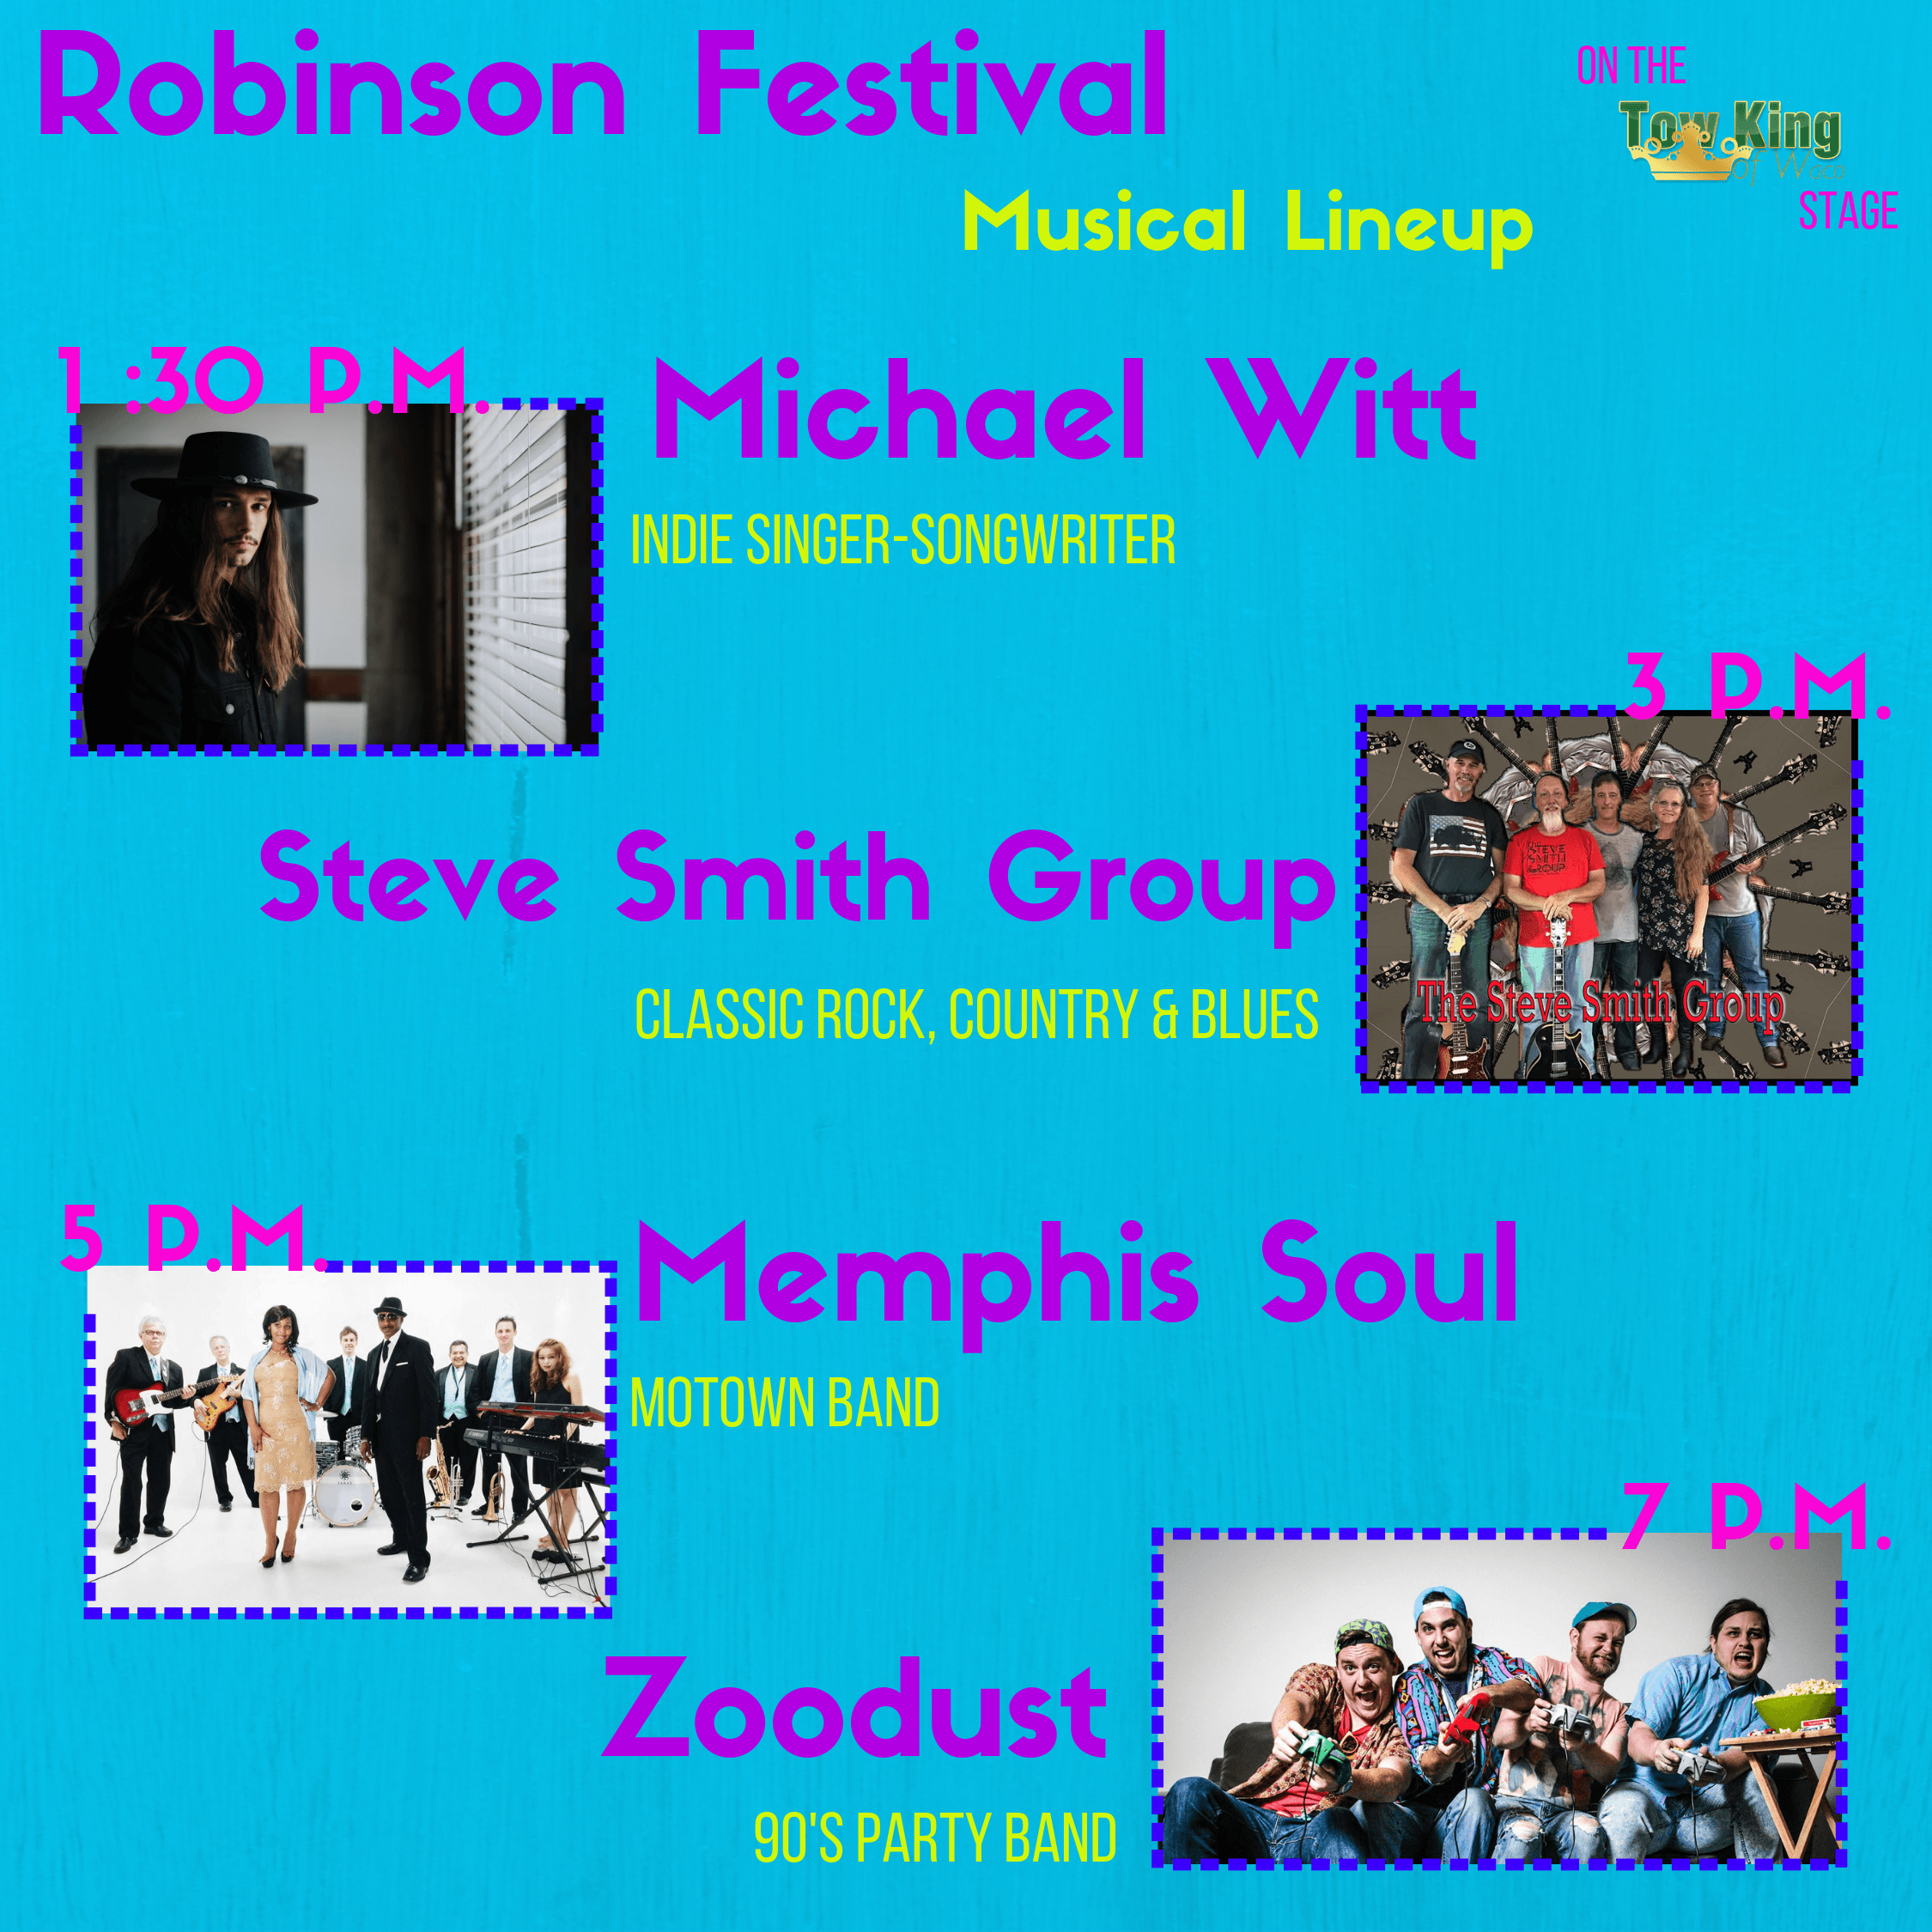 Robinson Festival Musical Lineup; 1:30 pm - Micheal Witt, Indie Singer-Songwritter; 3 p.m. Steve Smi